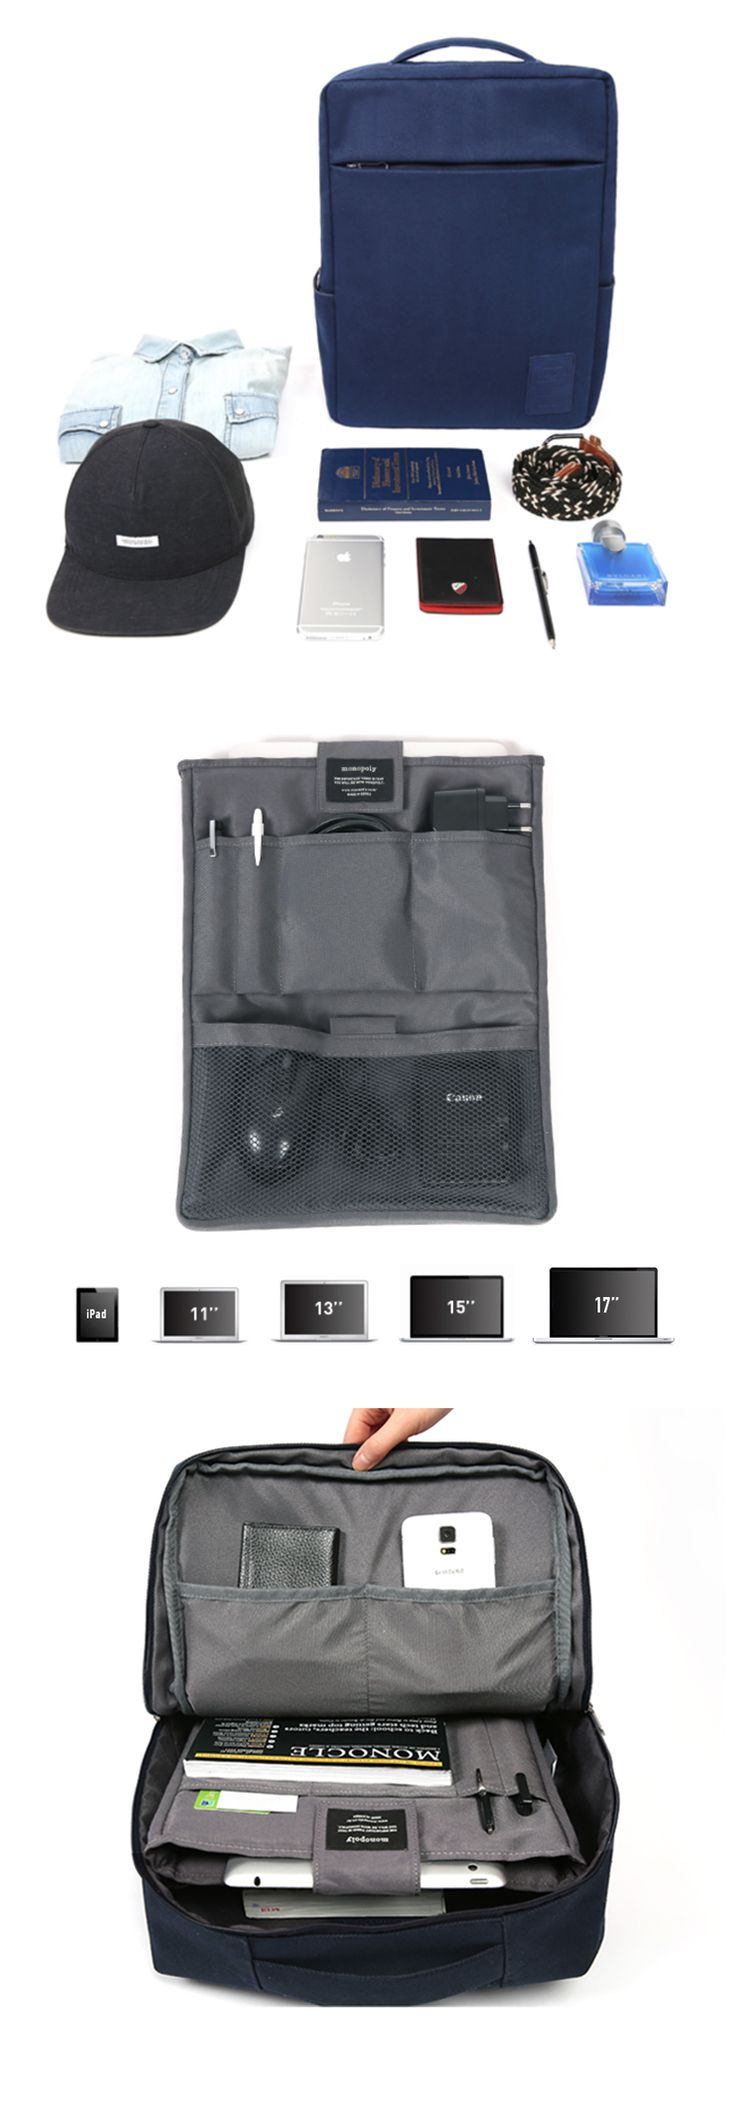 """I absolutely love this super organized backpack! The really neat thing about this backpack is that it comes with a detachable organizer insert that contains numerous pockets to store laptops up to 17"""", iPad, and other electronics too. There's even space to store your charger, mouse, stylus, and more. The backpack is quite spacious as you can store books, supplies, and even clothing all in one outing! Additional colors in Mild Khaki, Monaco Blue, & Ebony Gray are now available at…"""